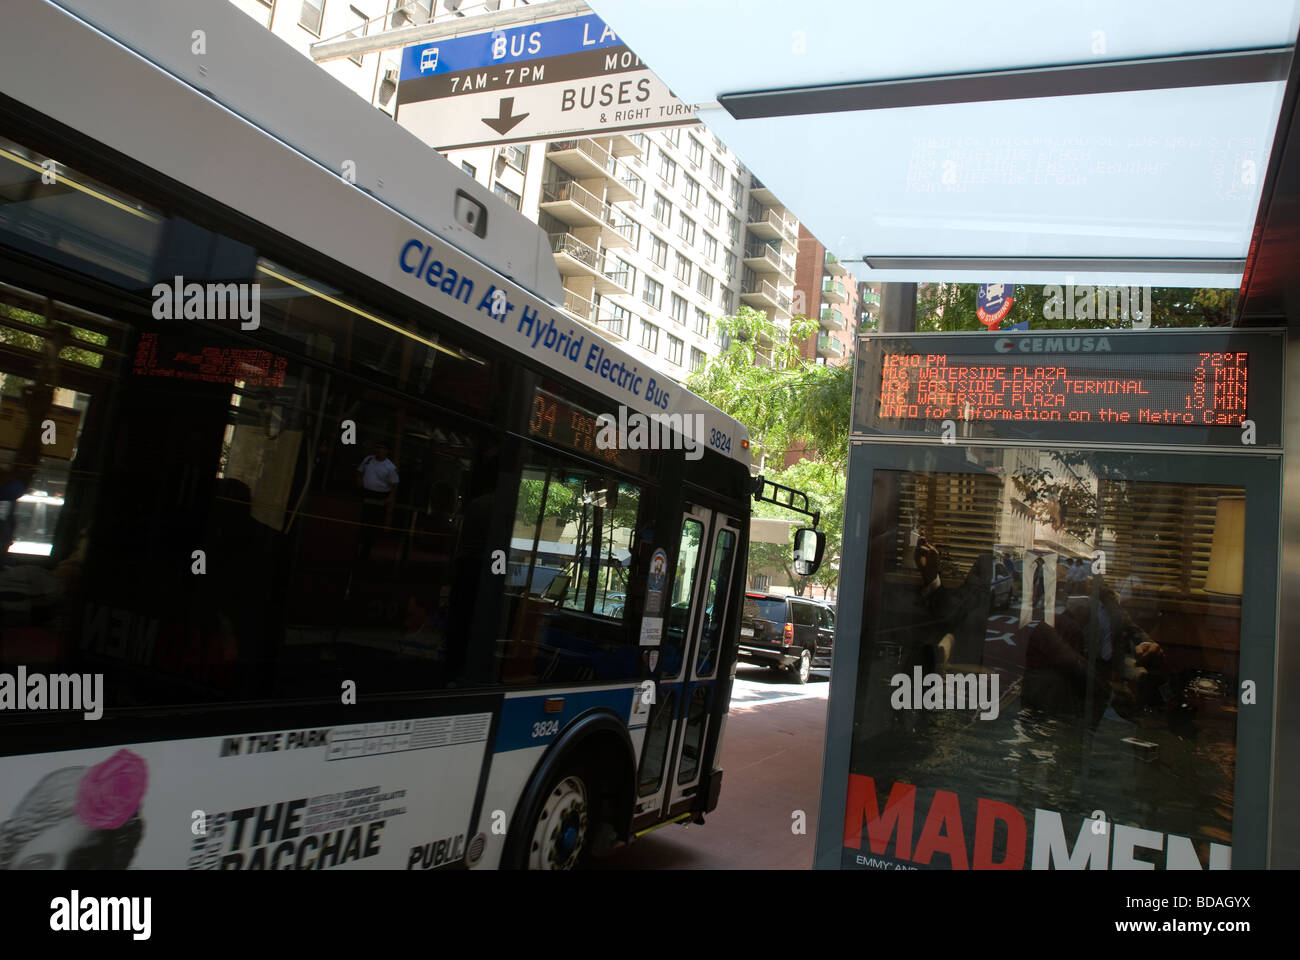 New route signs at bus shelters in New York inform commuters of time for bus arrival - Stock Image